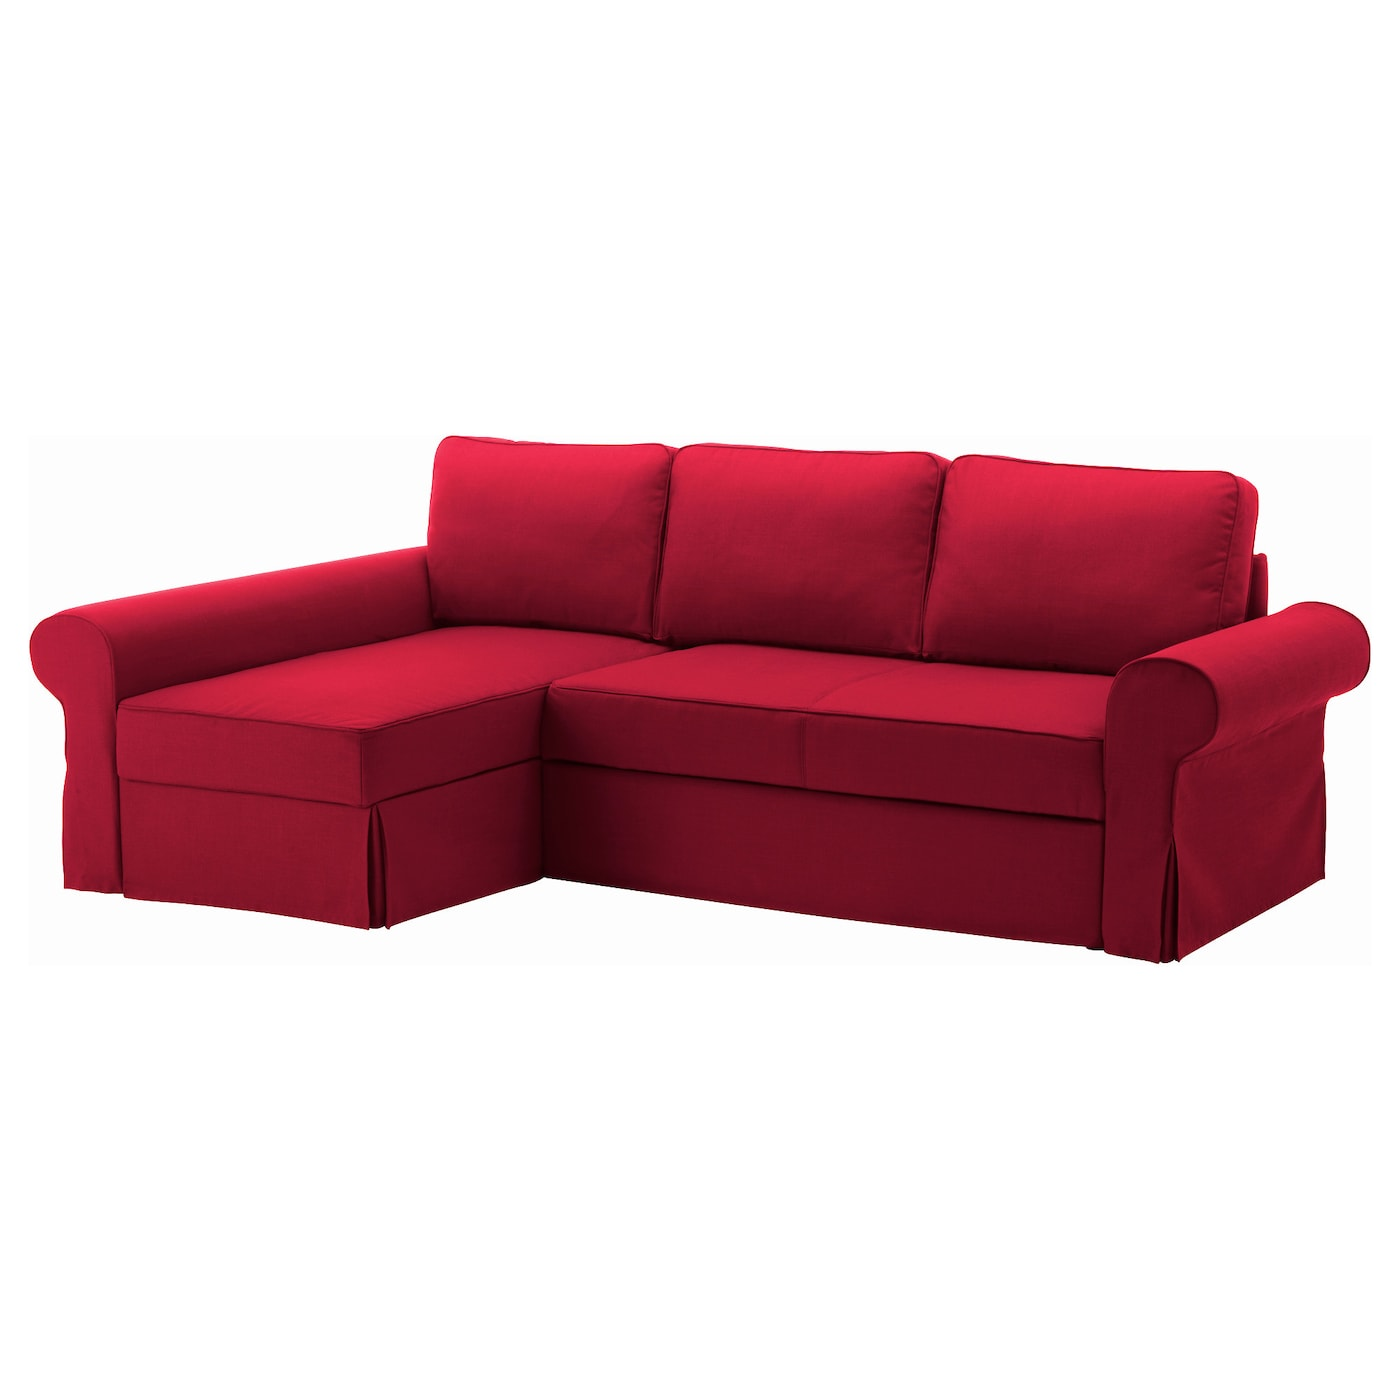 Backabro sofa bed with chaise longue nordvalla red ikea - Chaise longue fauteuil ...